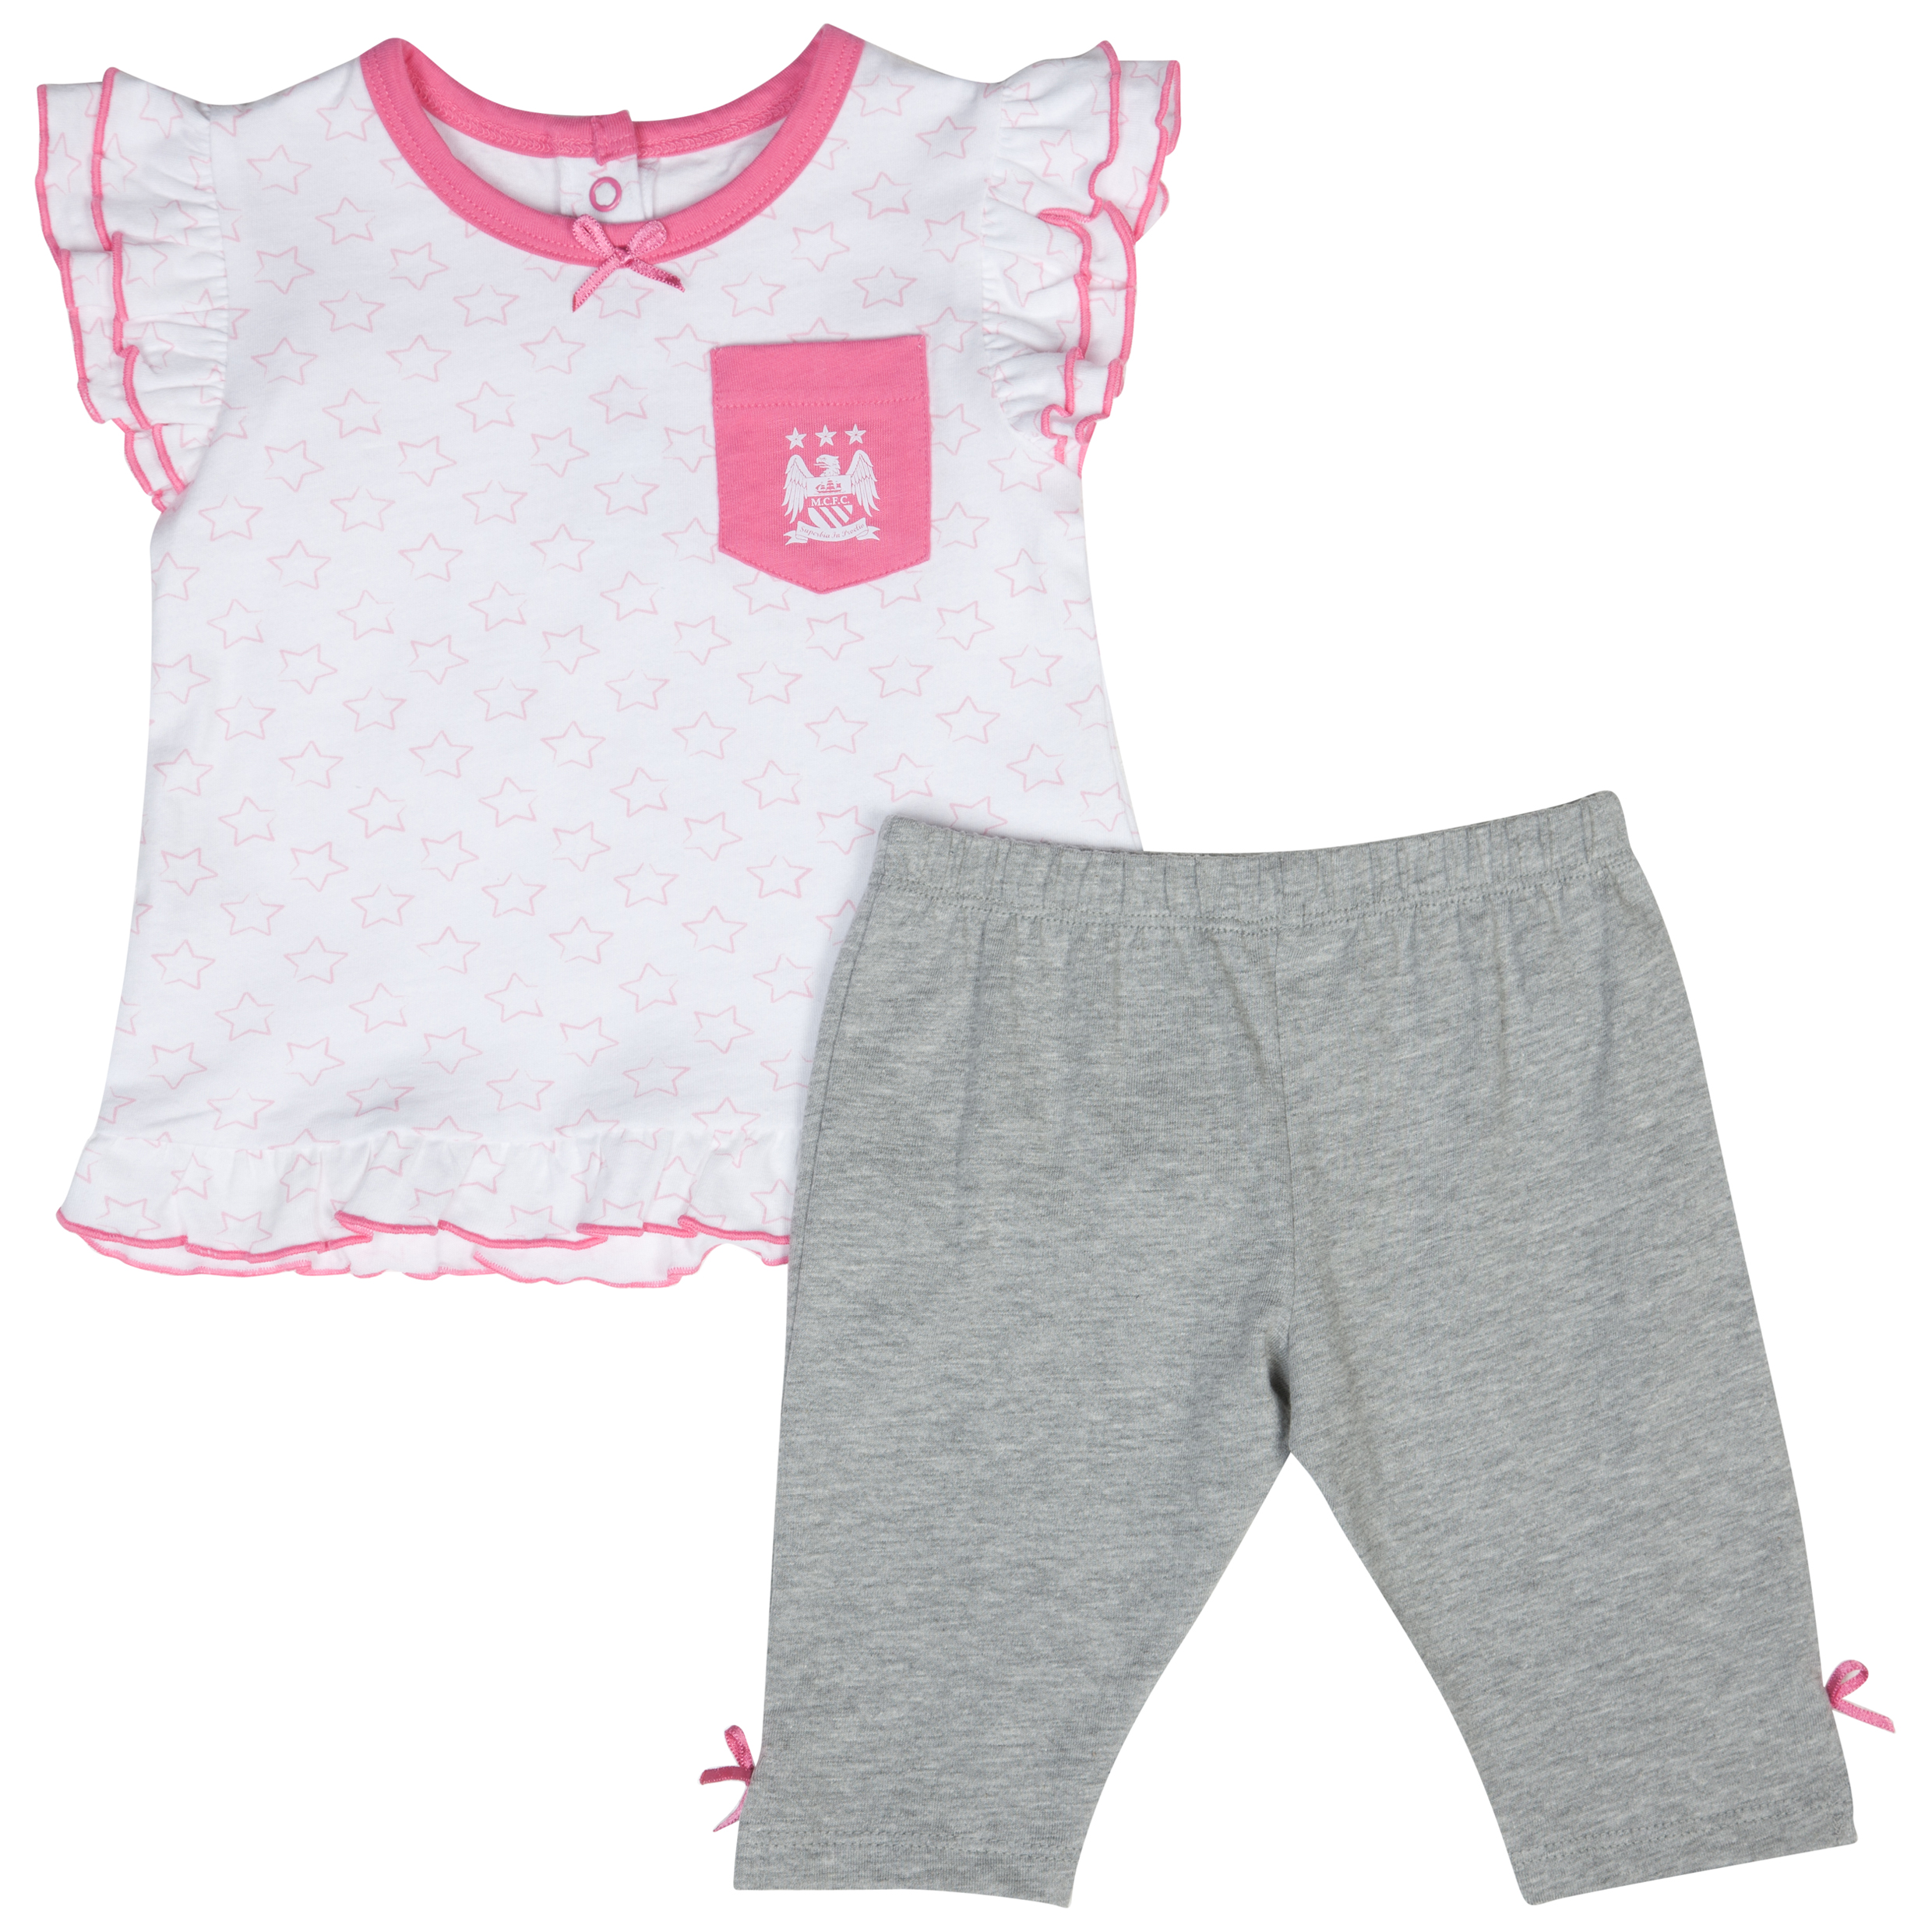 Manchester City Stars 2 Piece Set - Grey/White/Pink - Baby